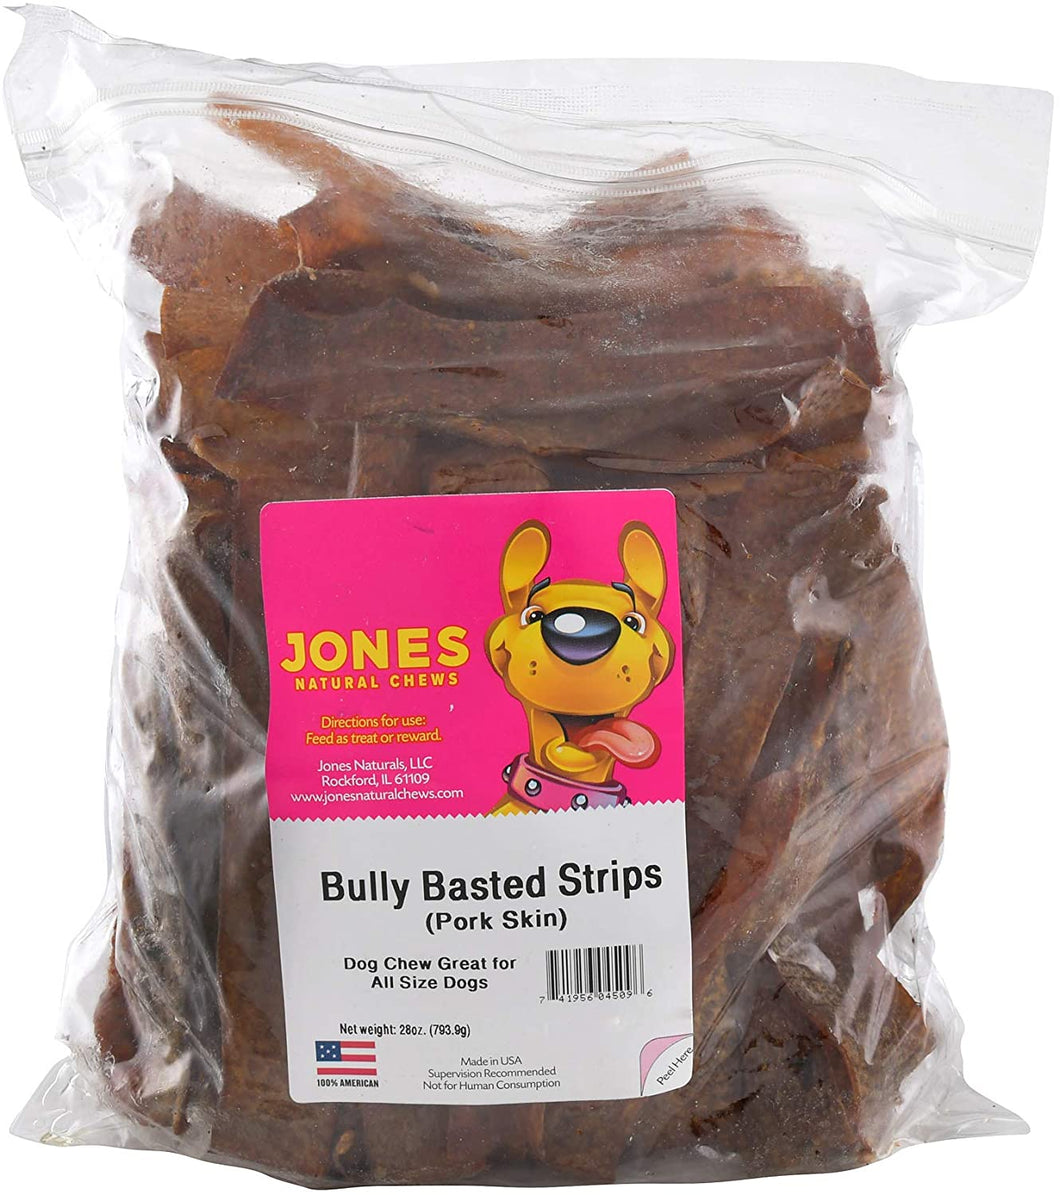 Jones Natural Chews Treats Bully Basted Strips